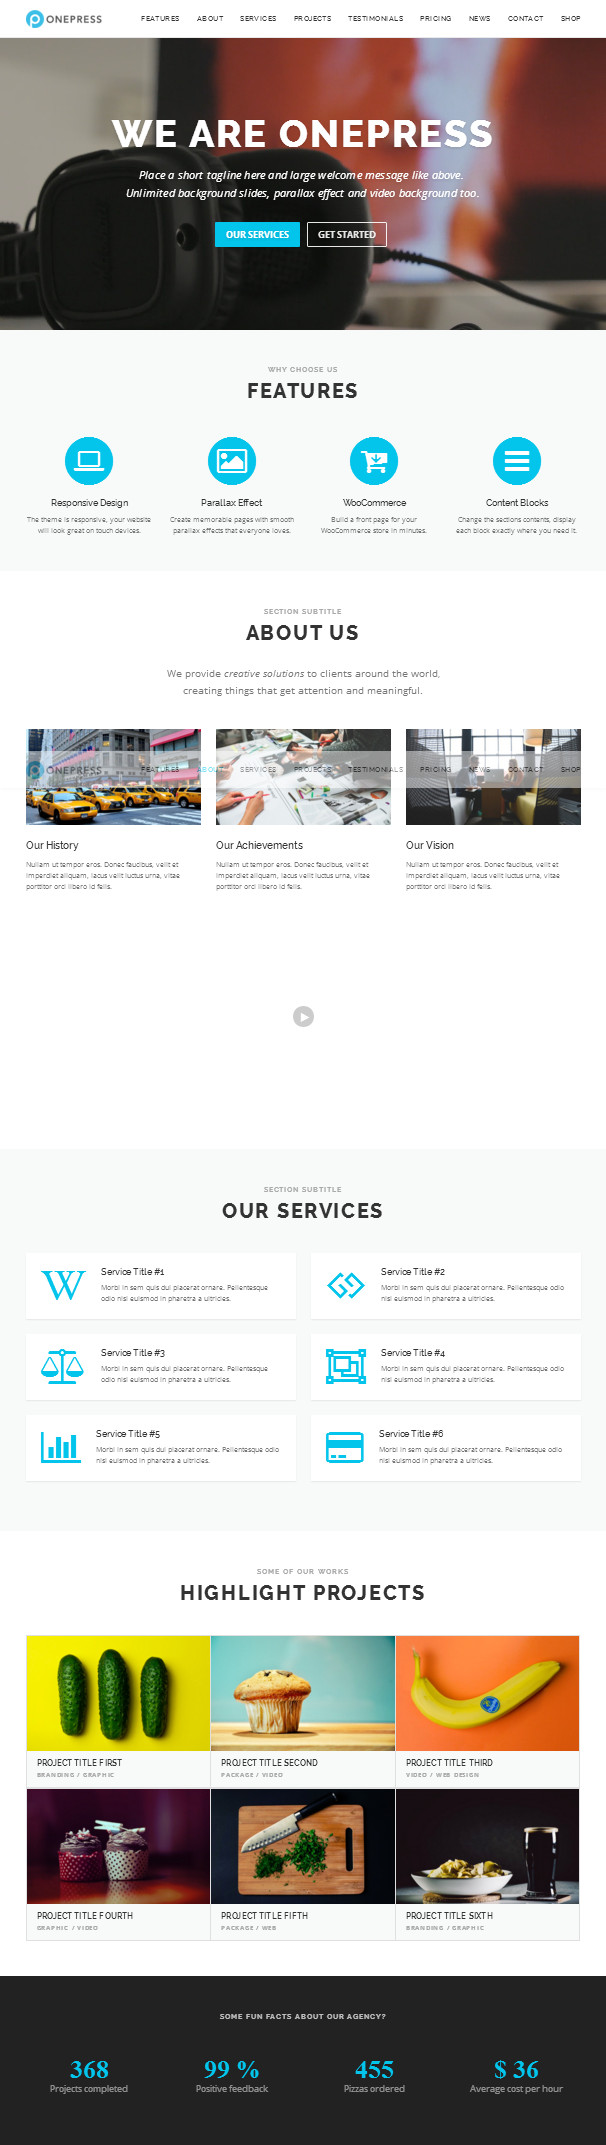 20-onepage